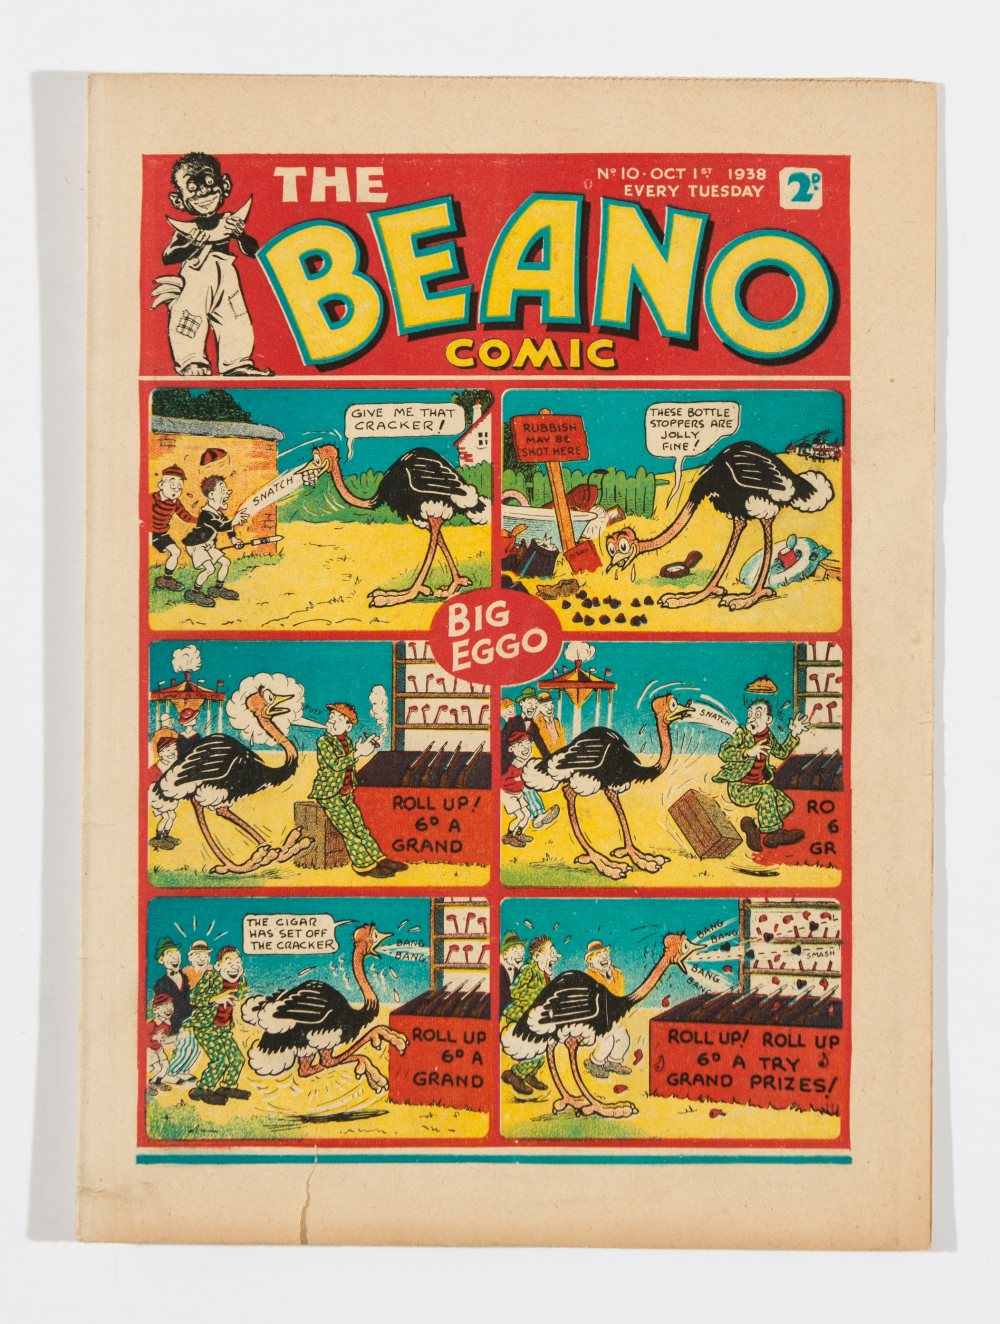 Lot 41 - Beano No 10 (1938). Bright, fresh covers, cream pages. 1 ins tear to lower cover margin, two ½ ins